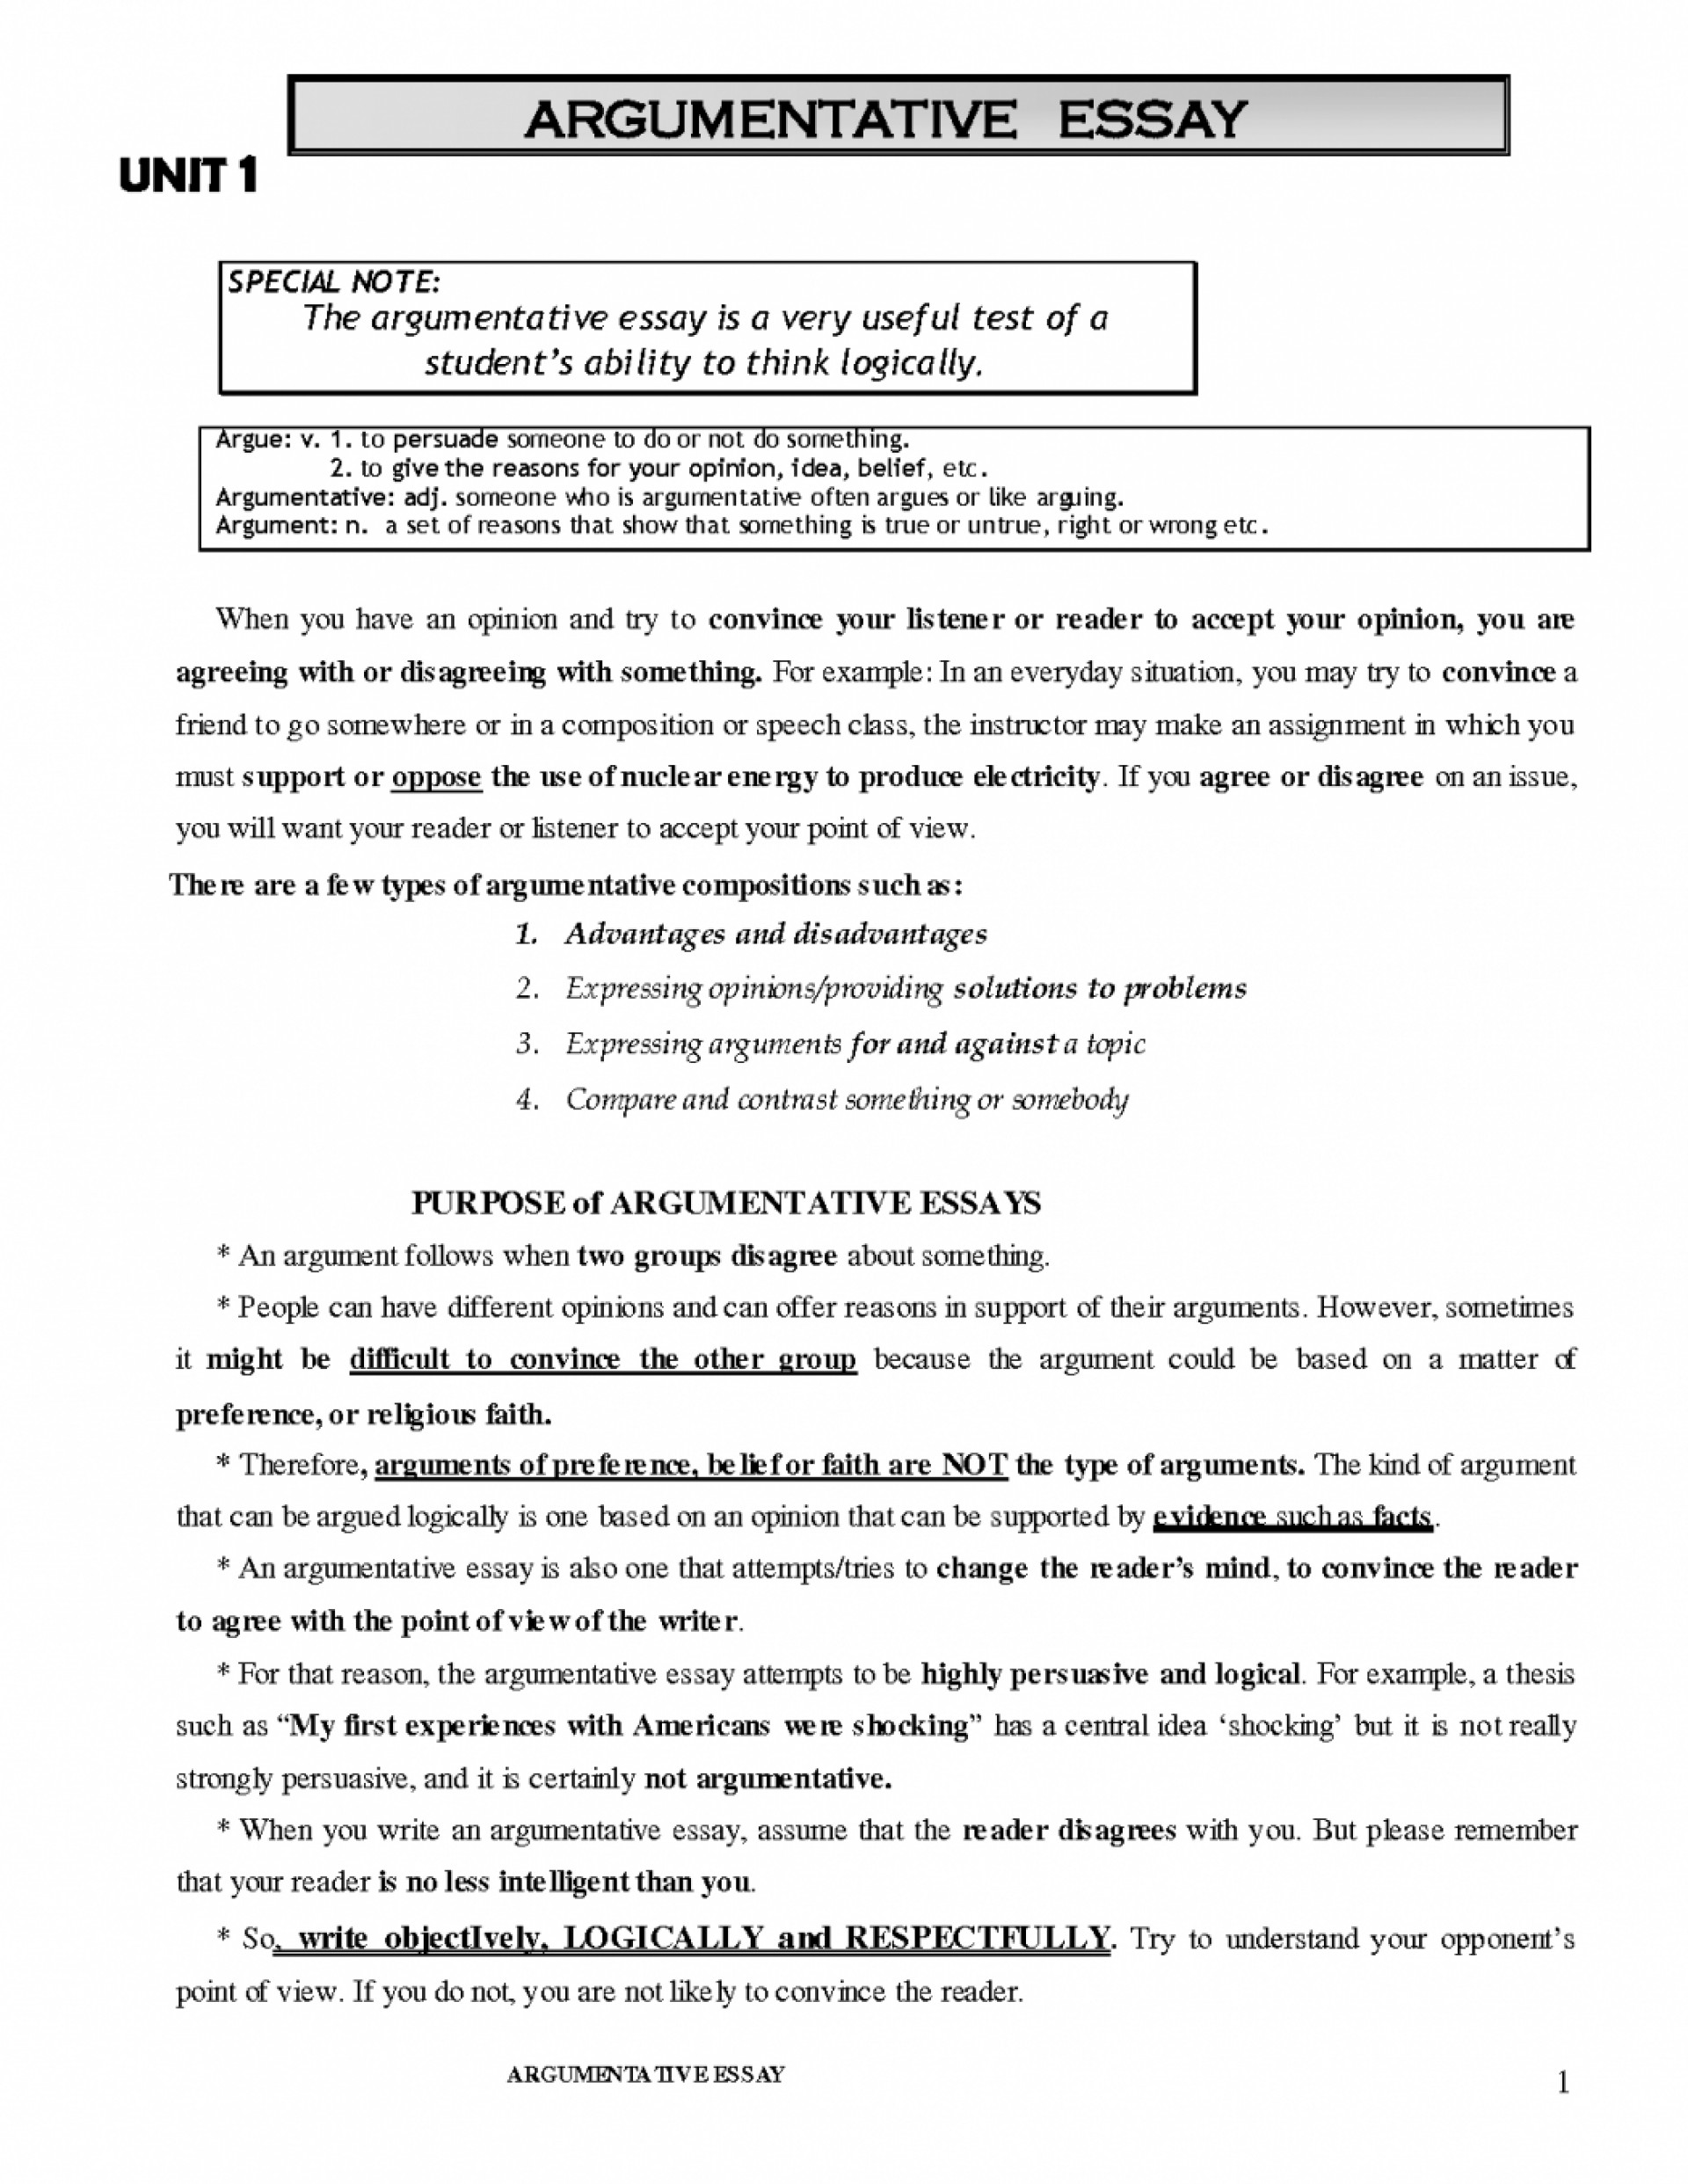 014 Essay Example Writing An Argument Argumentativeersuasive Essayspt Video Step By Lwhaeowerpoint About Firerevention Write Scope Middle School Edgenuity Thesis Outstanding Sample Argumentative Pdf Download Ppt 1920